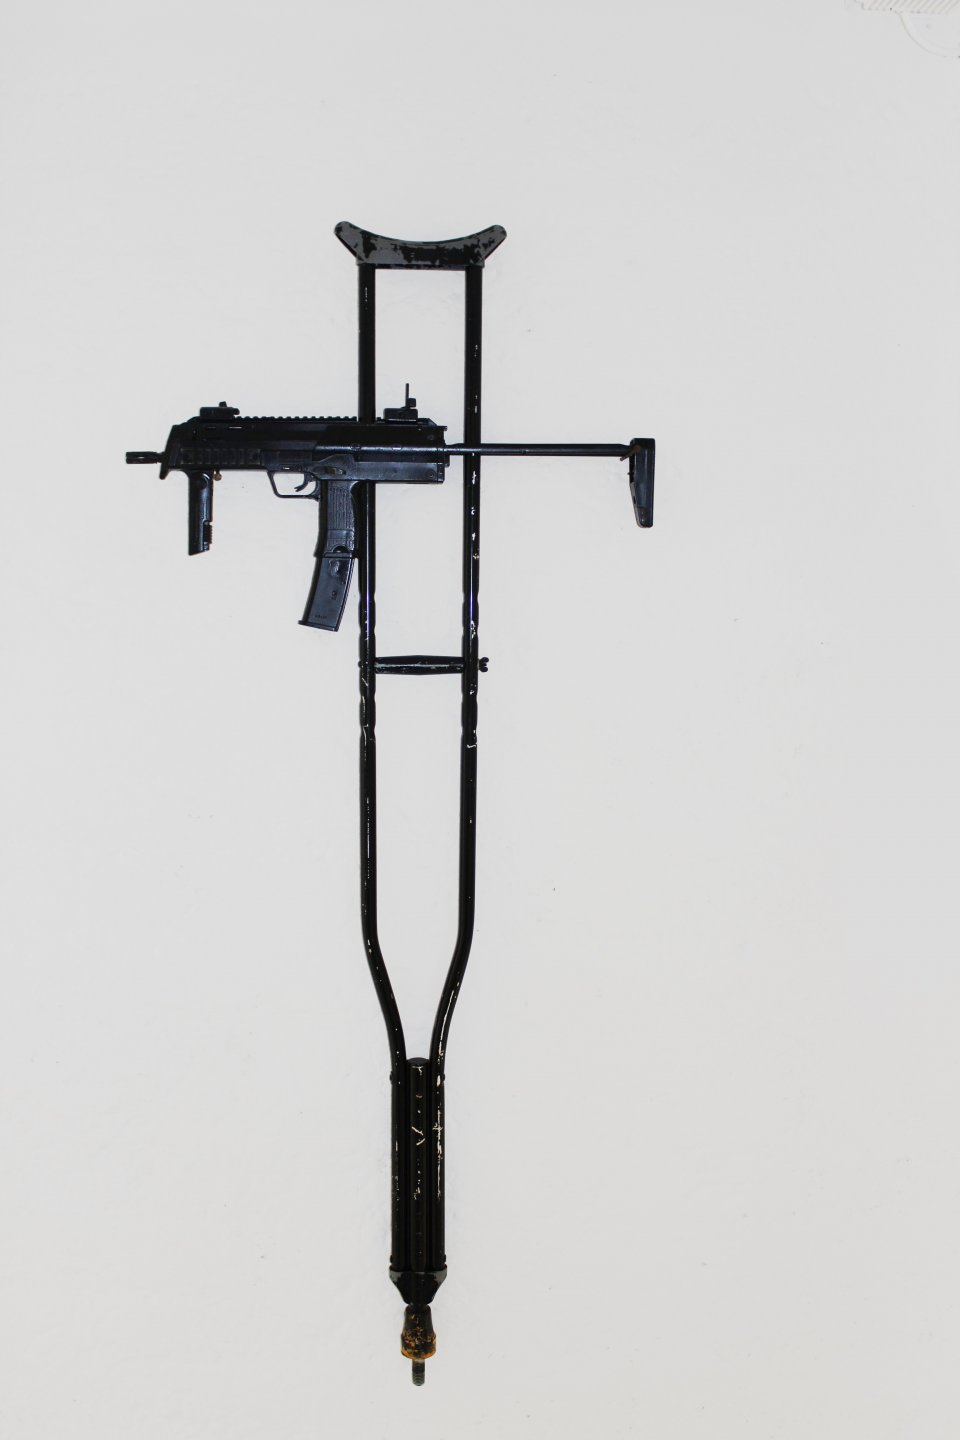 Galerie Benjamin Eck München MARC THALBERG 'RE-LIGION', metal, synthetic, 135cm x 60cm x 4cm, 2011